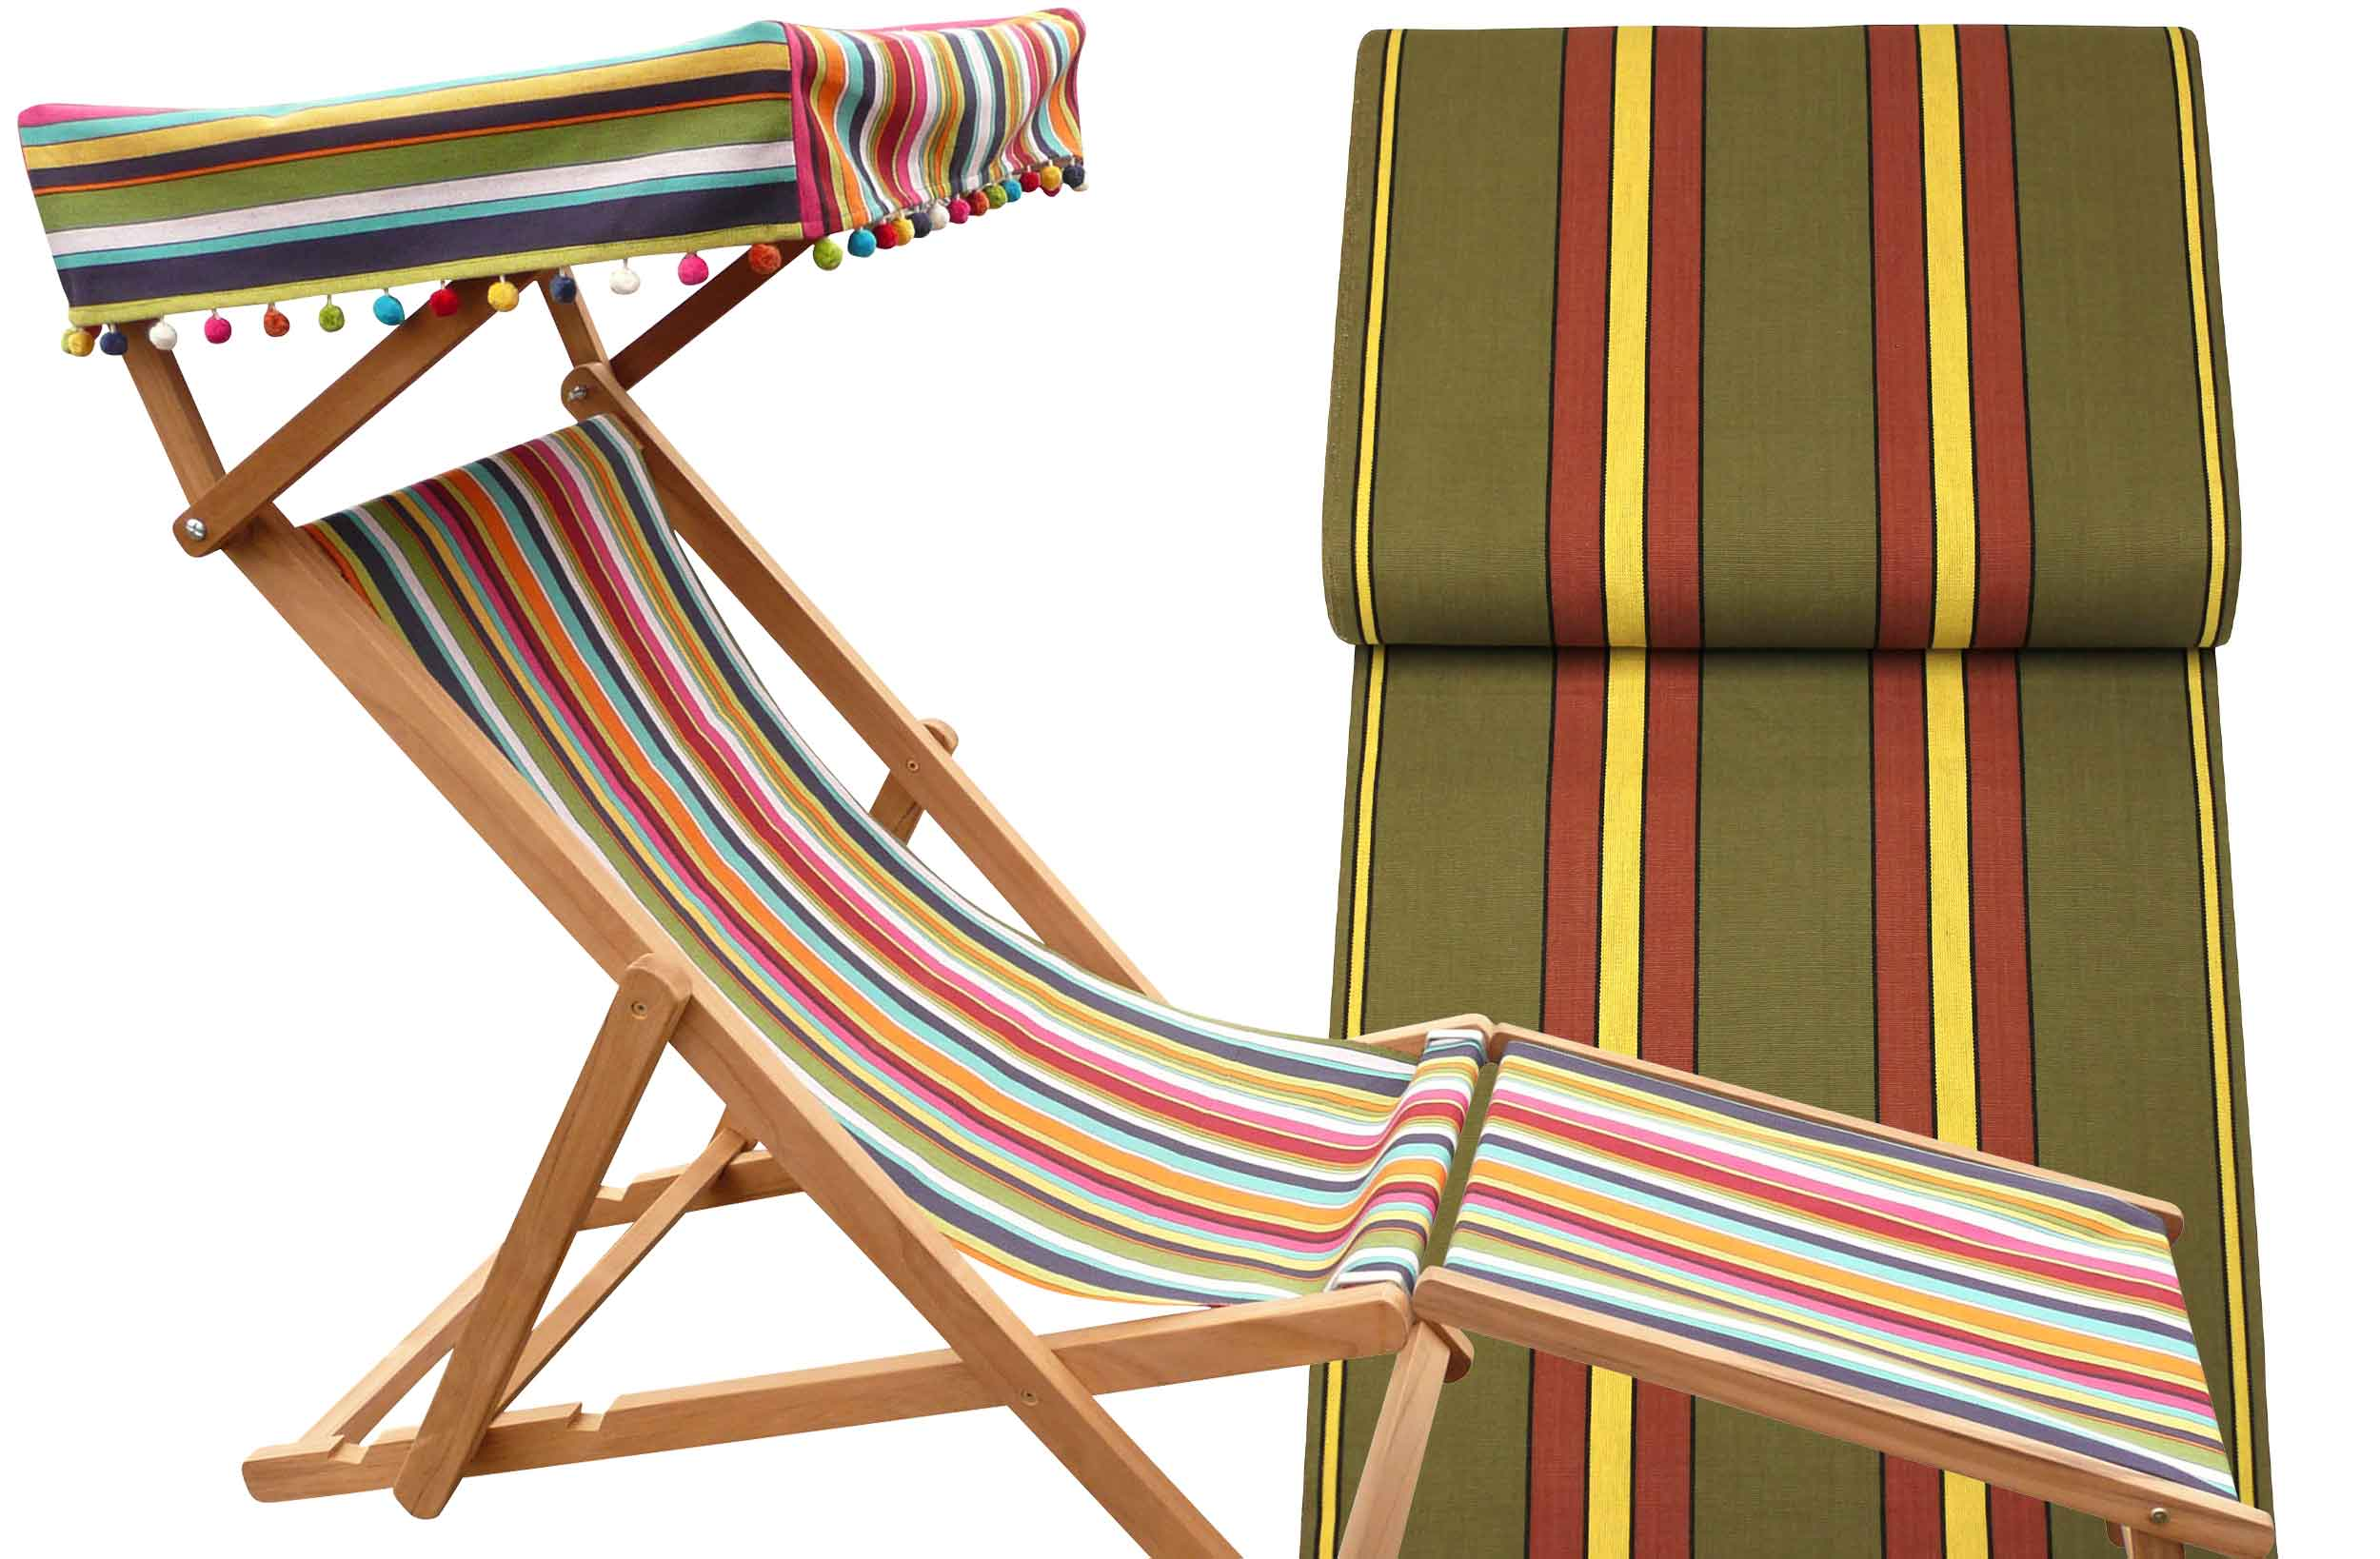 Edwardian Deckchairs with Canopy and Footstool khaki, maroon, sand